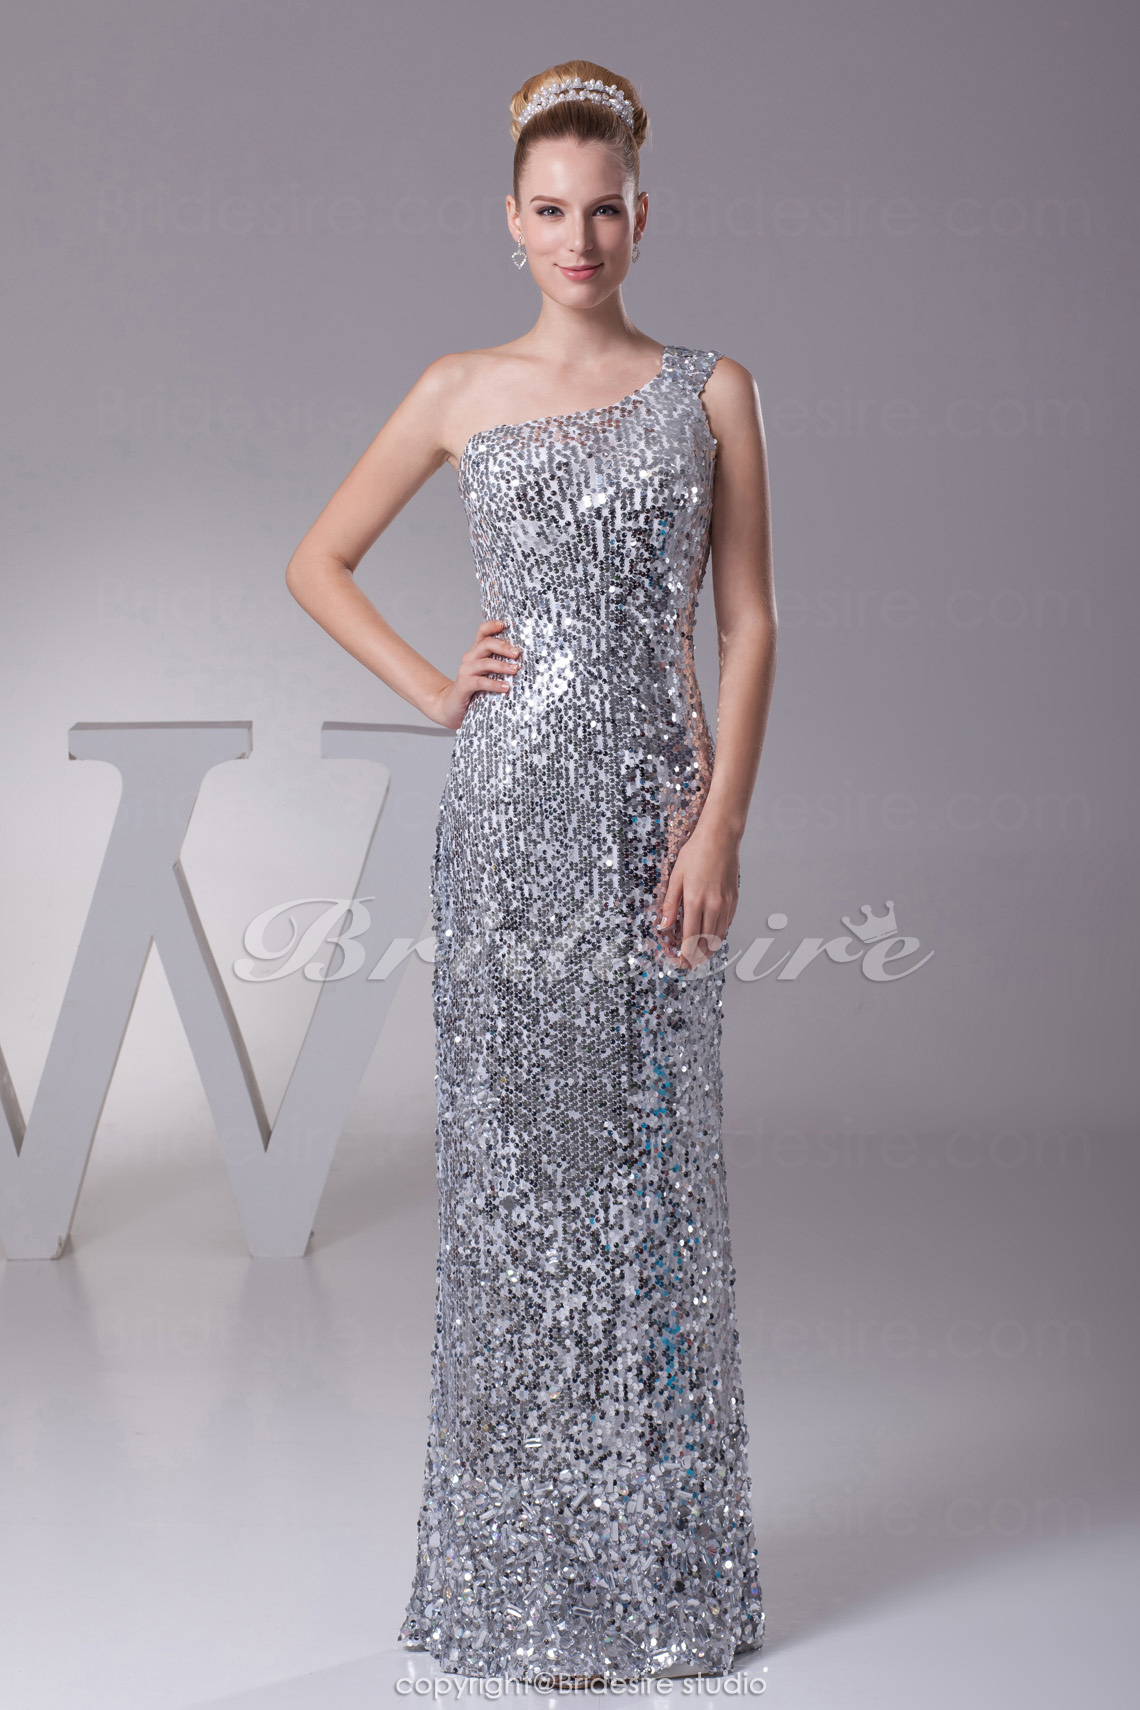 Sheath/Column One Shoulder Floor-length Sleeveless Sequined Dress